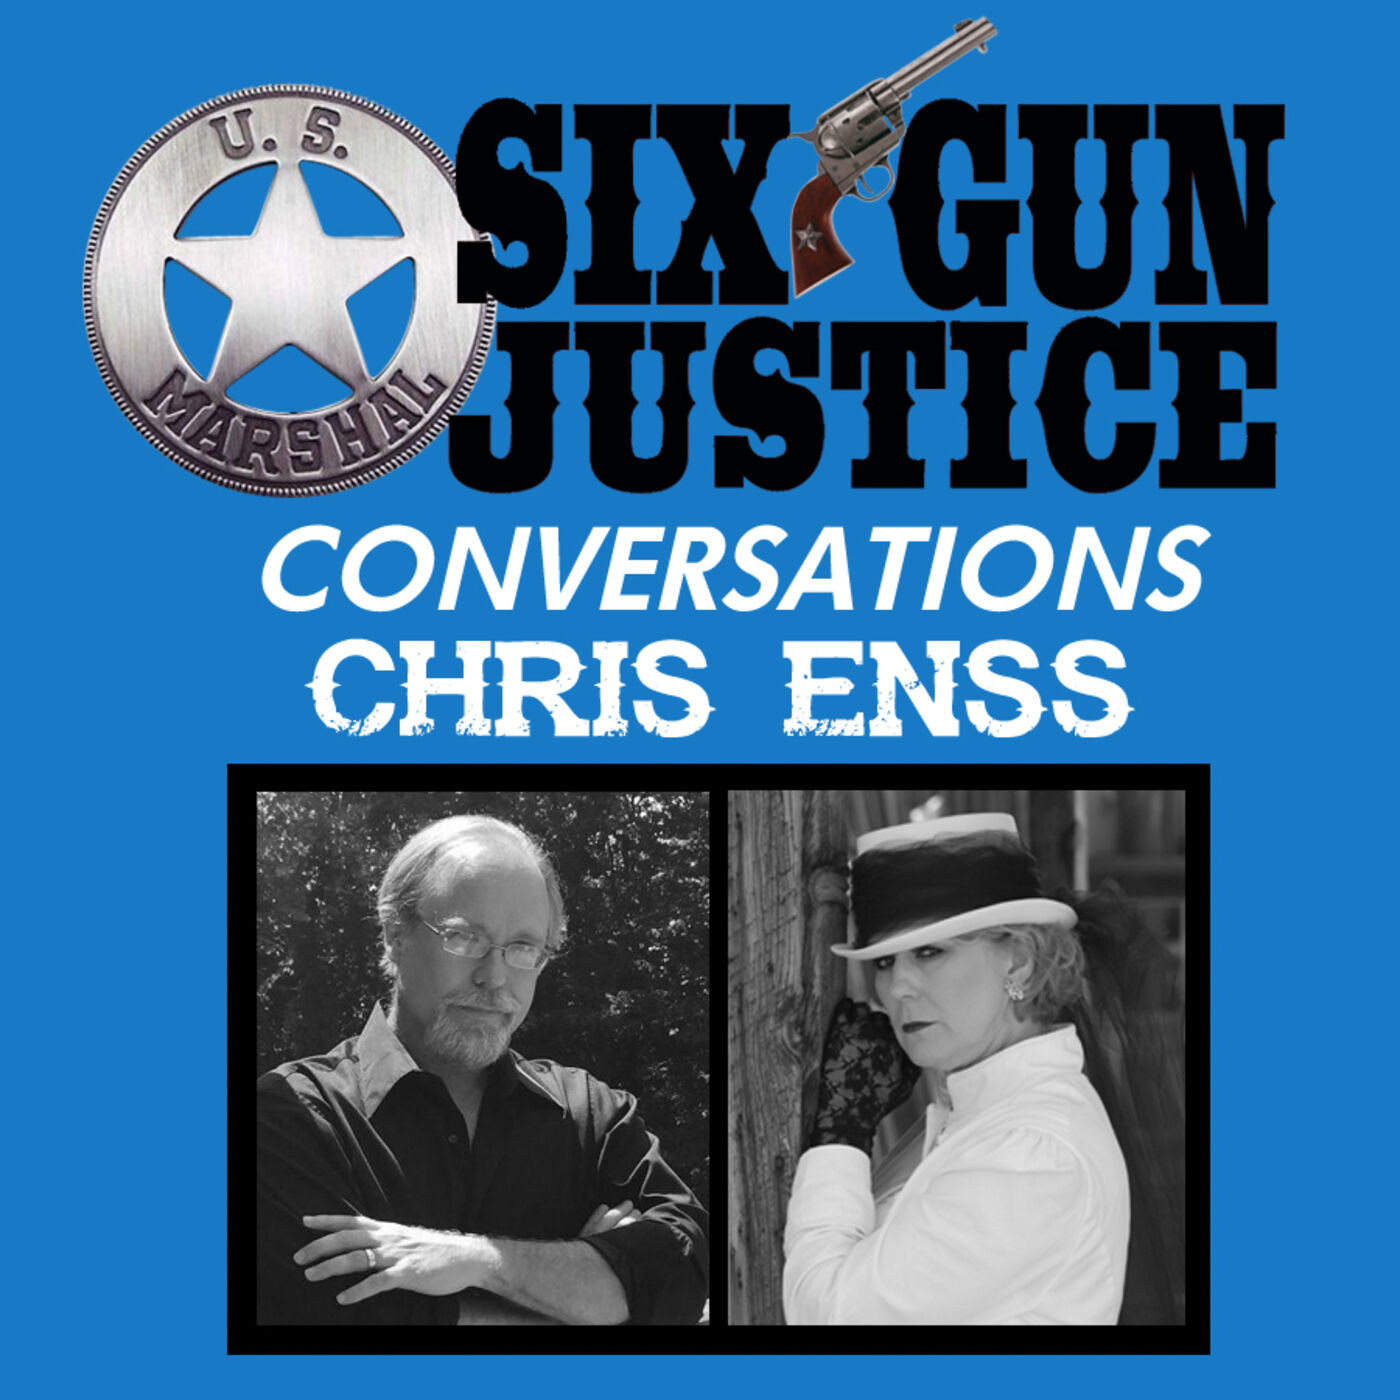 SIX-GUN JUSTICE CONVERSATIONS—CHRIS ENSS